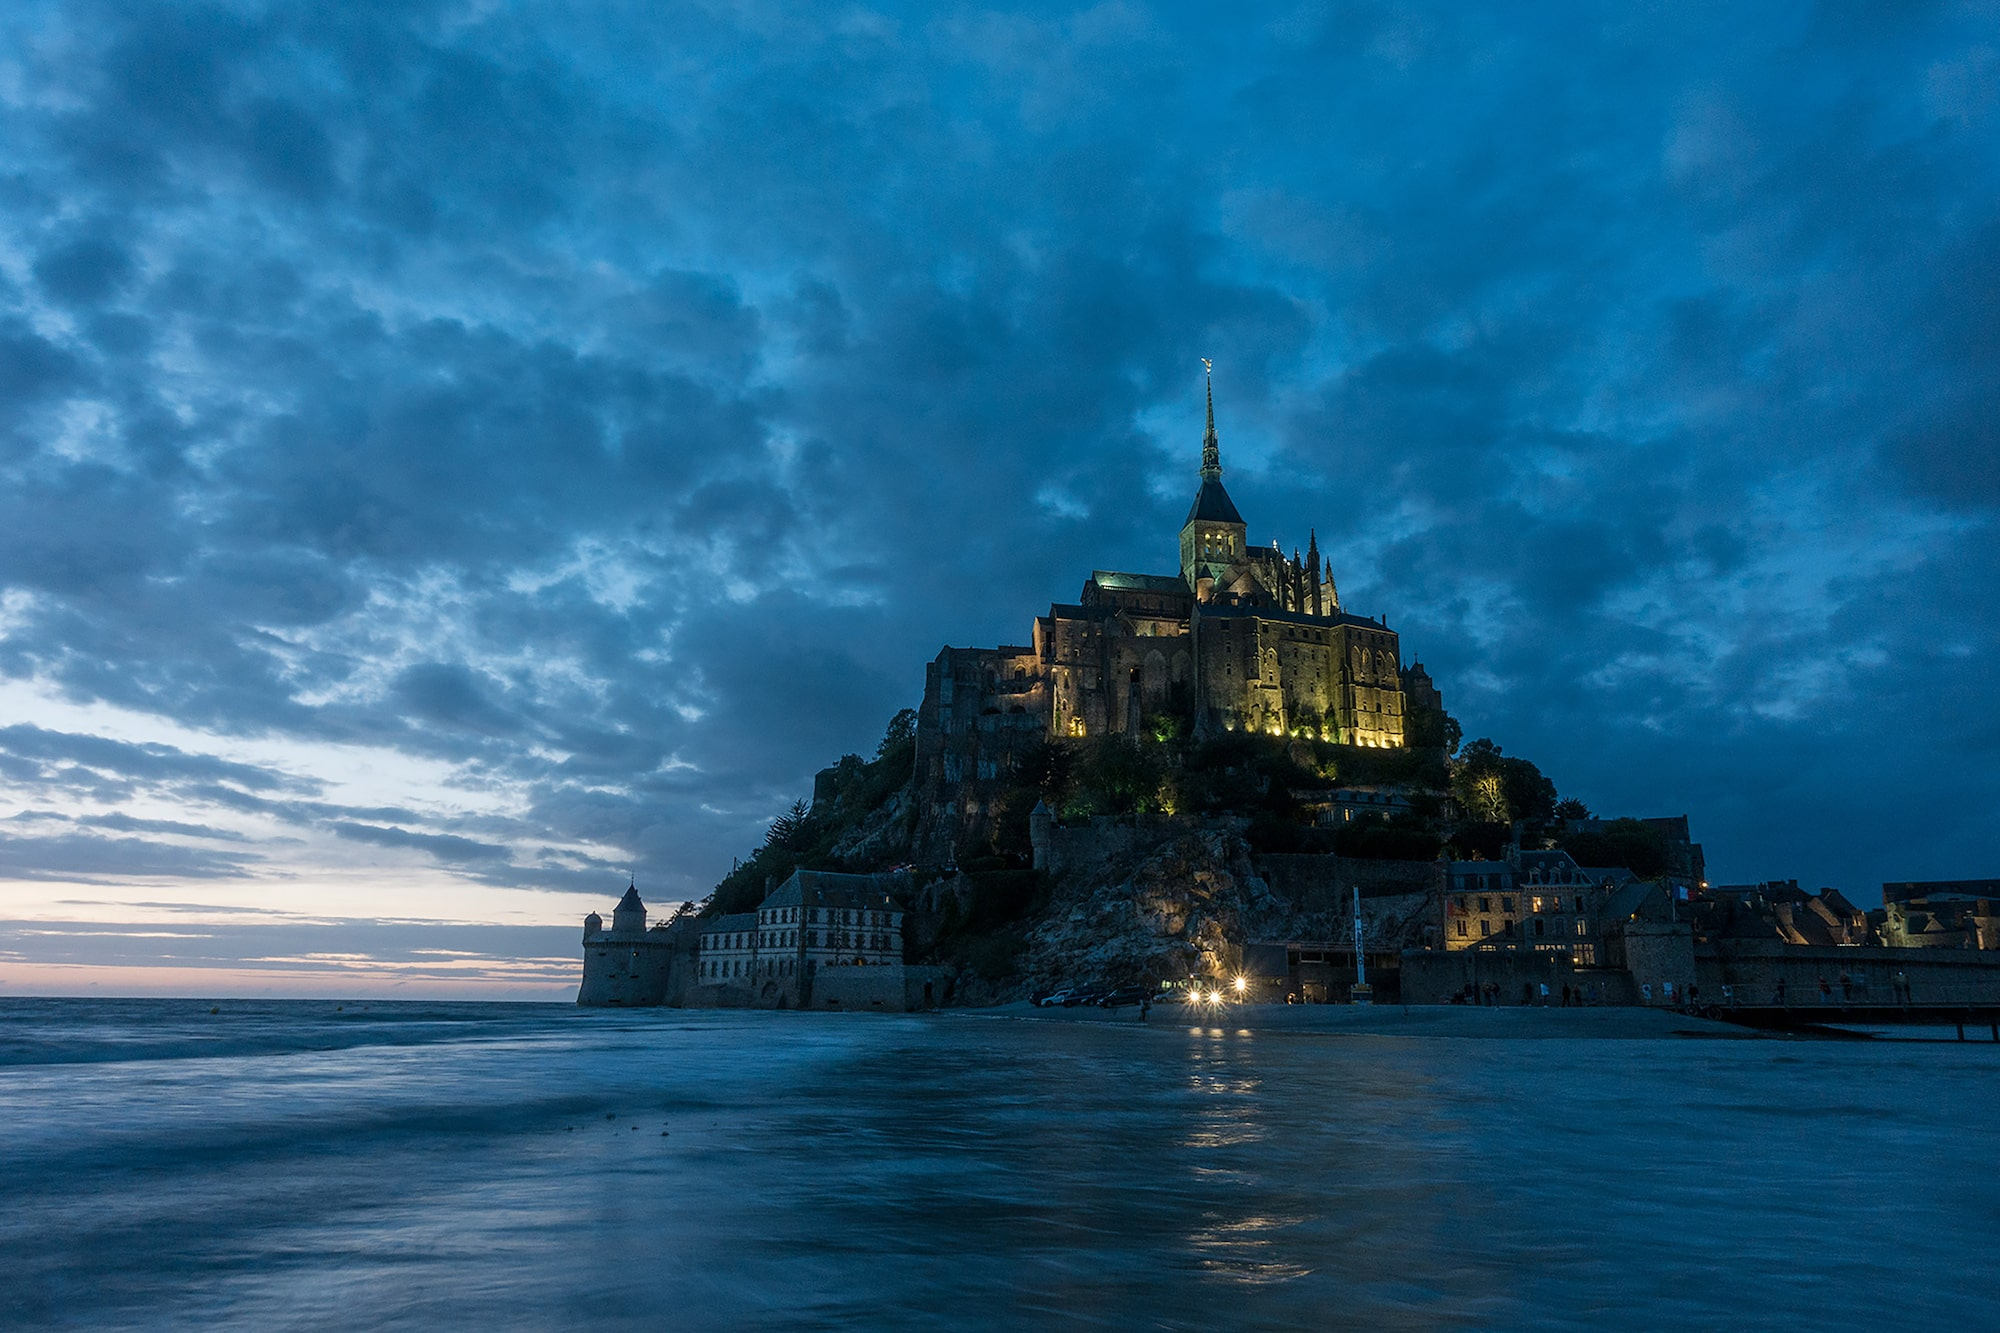 marek arcimowicz sony rx100V a castle looms against a dark cloudy sky with the ocean in the foreground